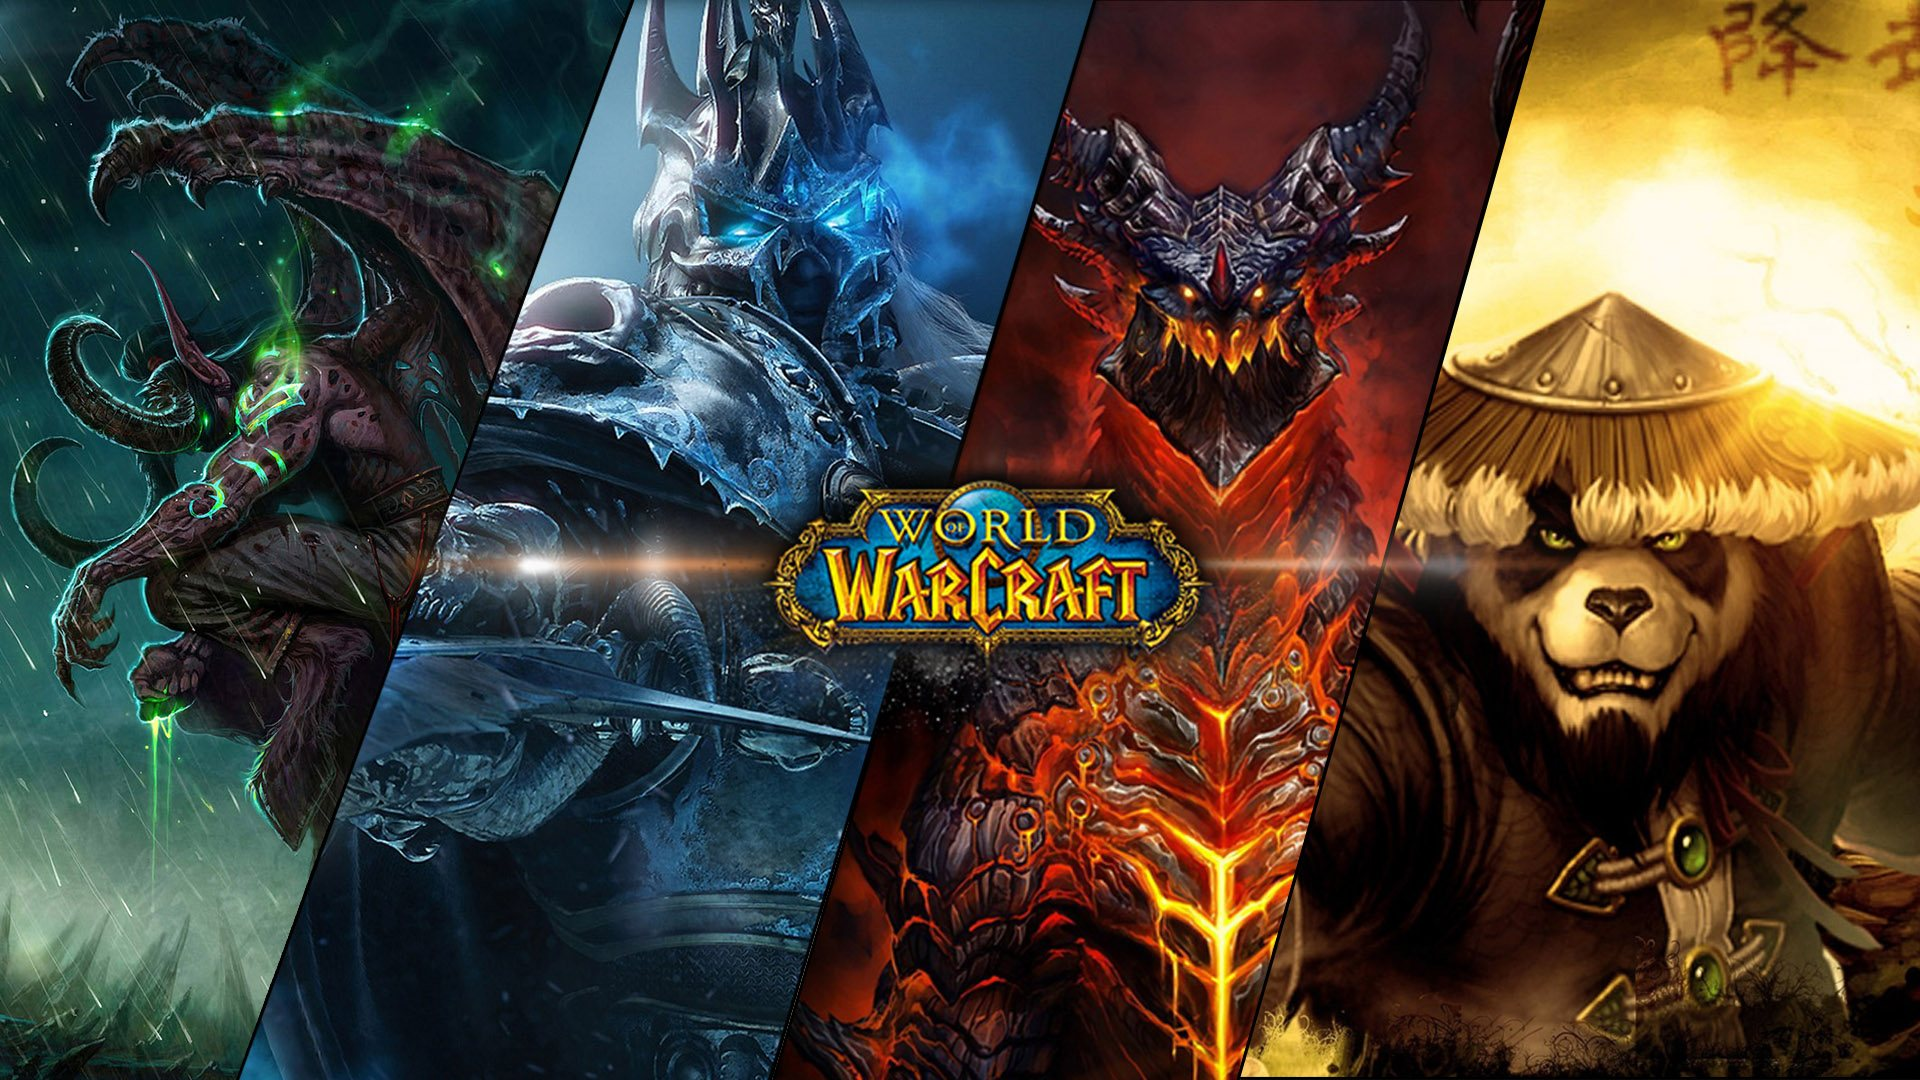 World of Warcraft coaching - Learn how to get up to 2400